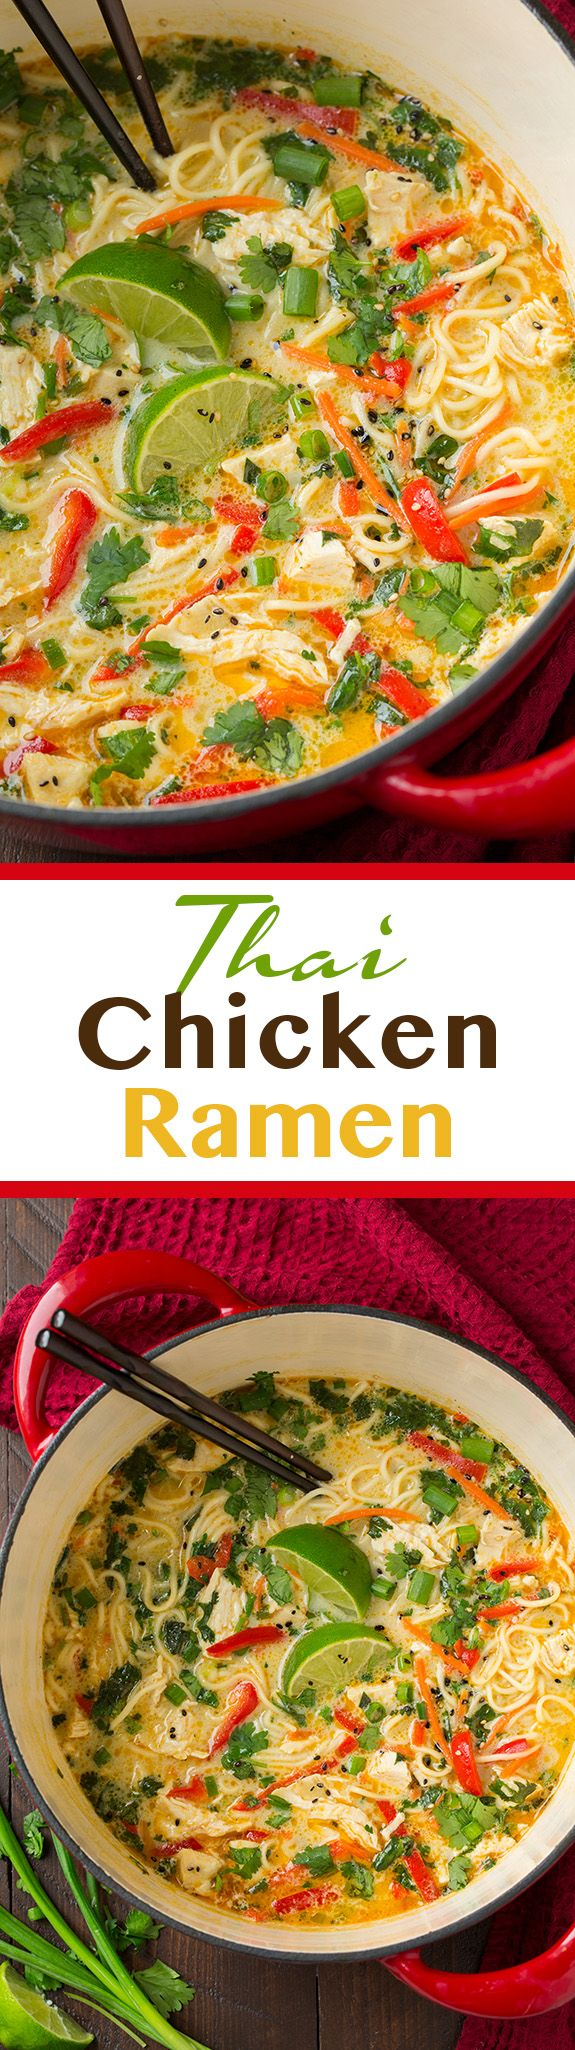 This Chicken Ramen is a comforting Thai-flavored soup that's filled with veggies, tender pieces of chicken and a creamy coconut broth.